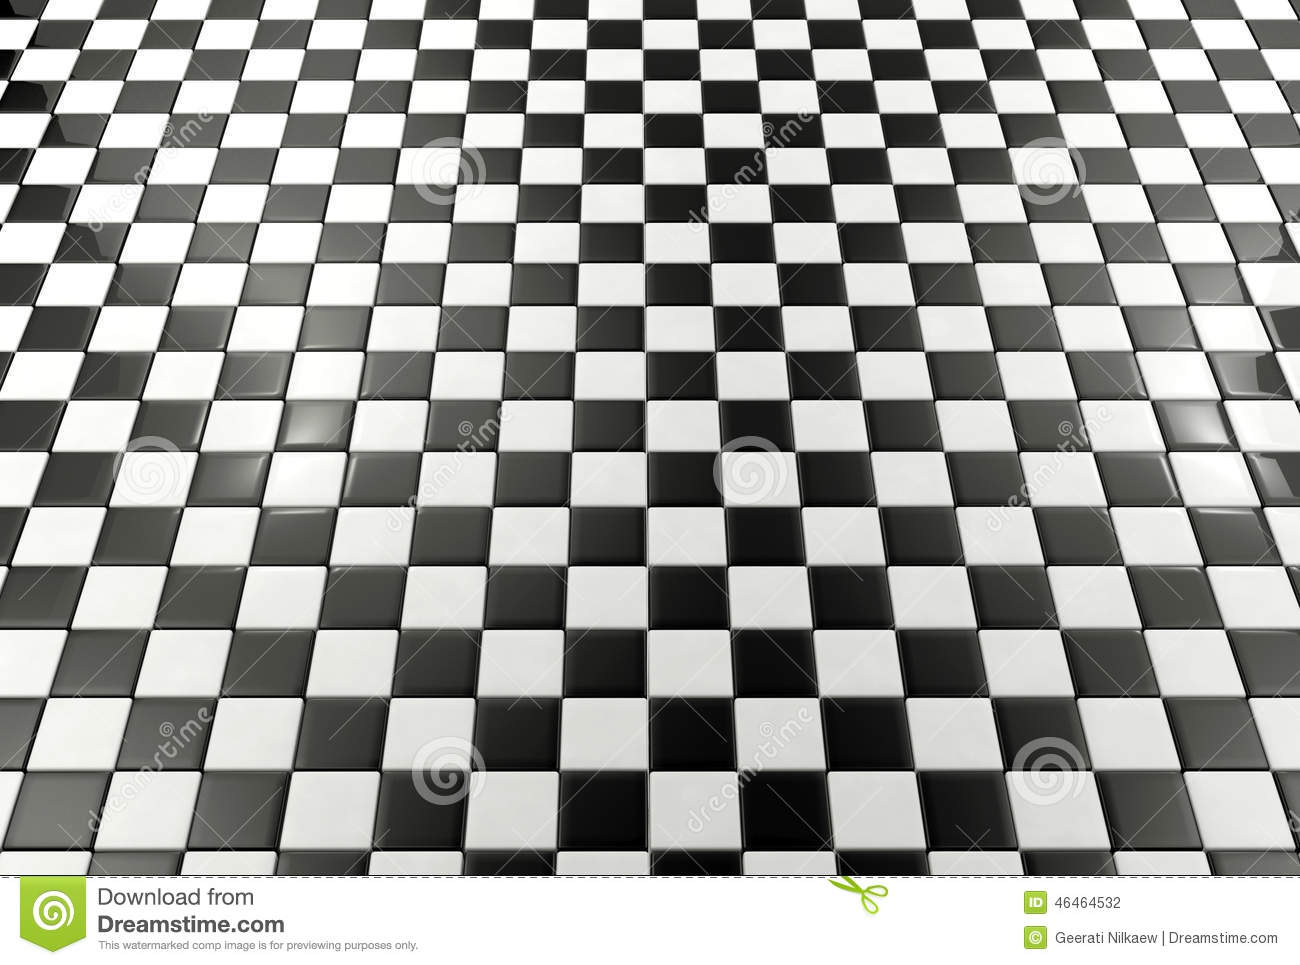 Black and white tiles background stock illustration for Black and white tile floors